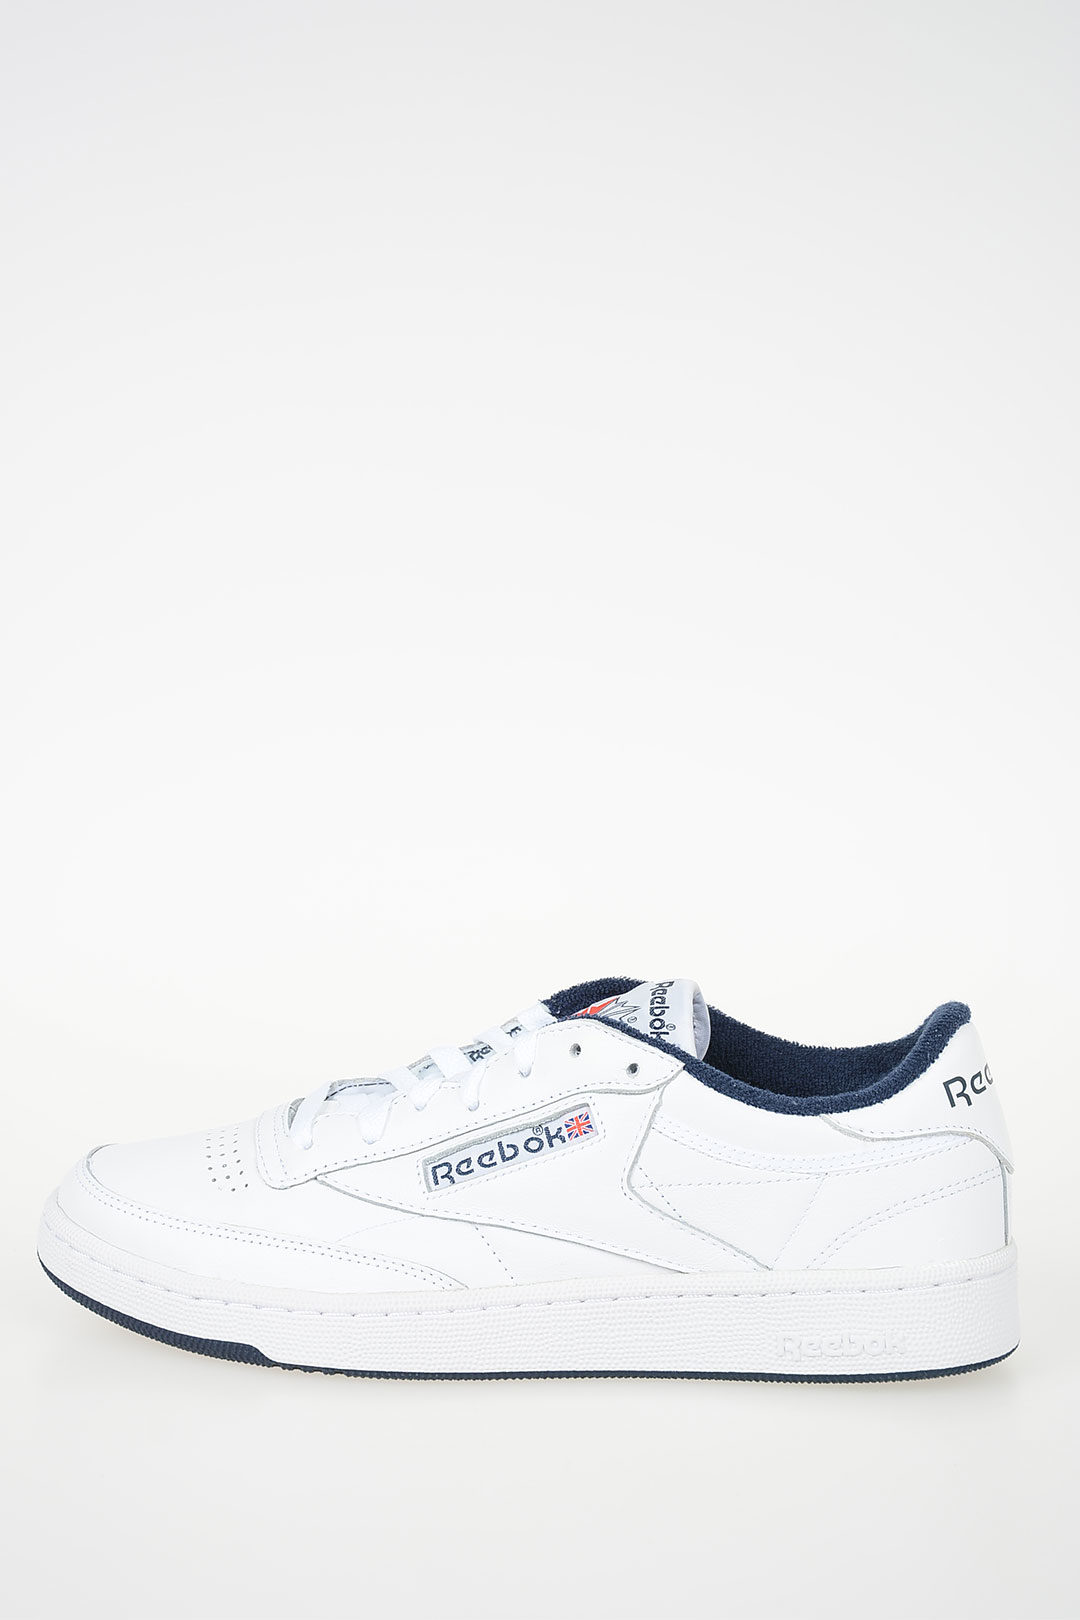 4e841a5bcf5 Reebok Leather CLUB C 65 ARCHIVE Sneakers men - Glamood Outlet